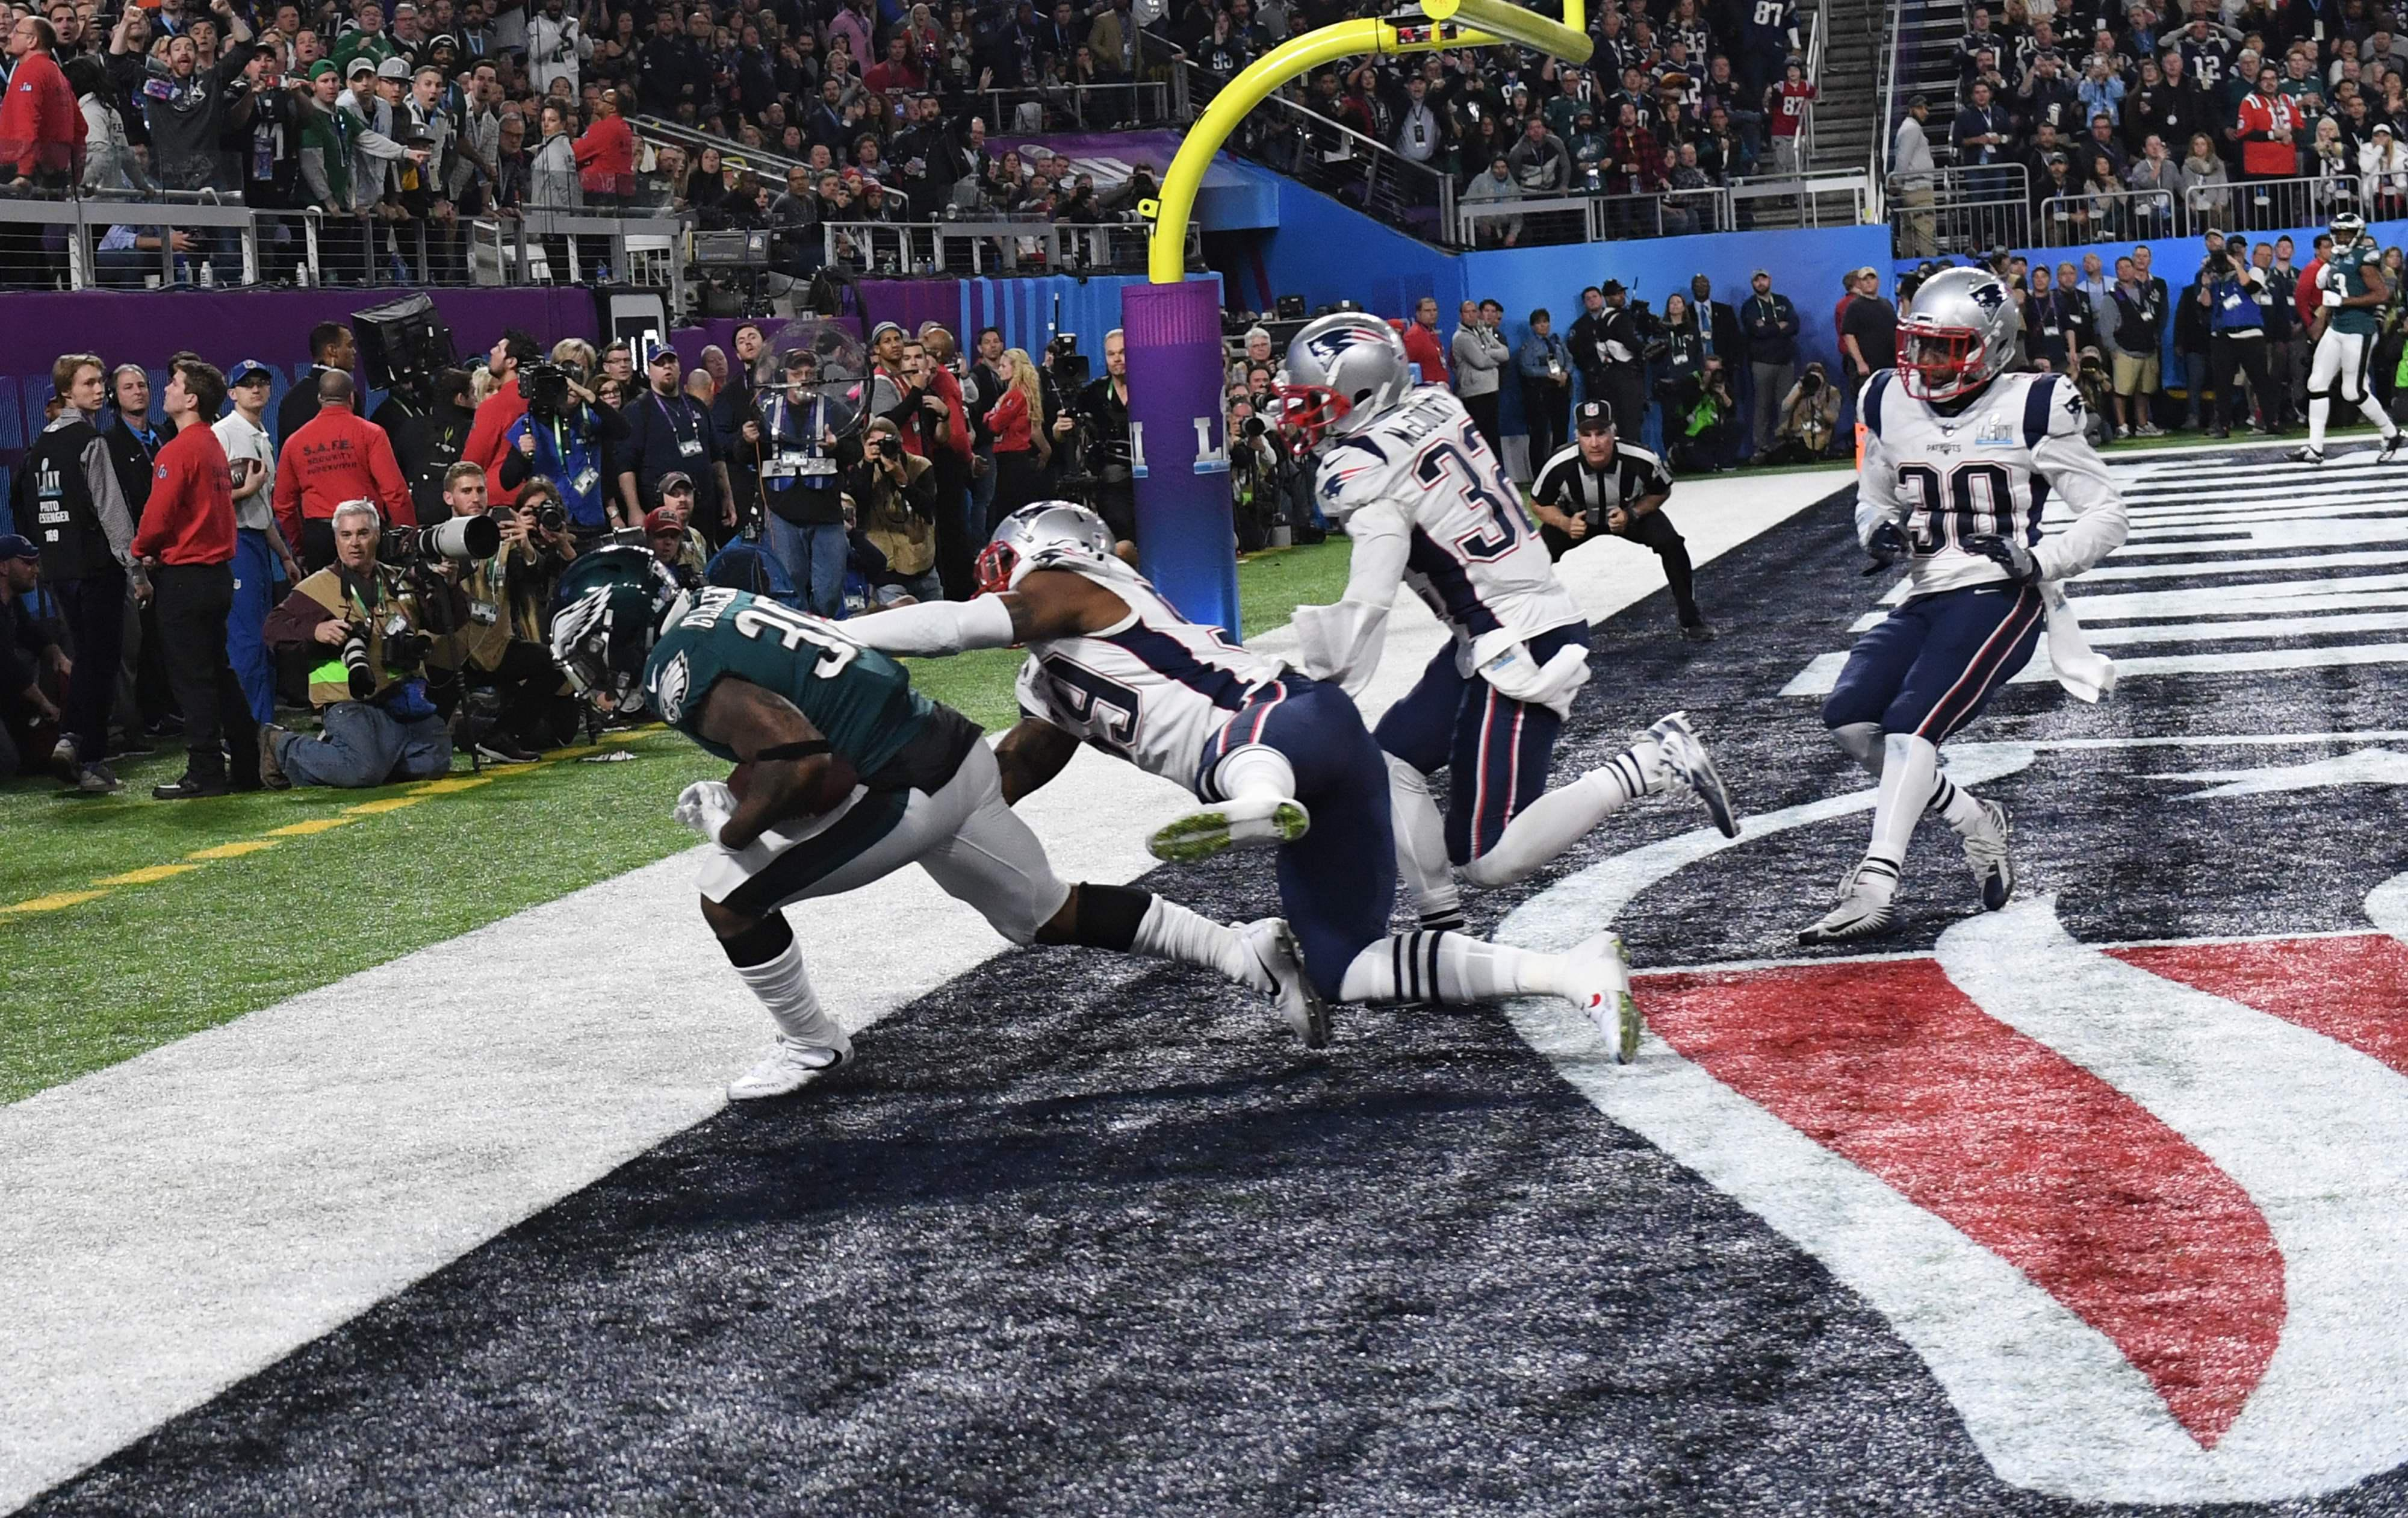 Corey Clement catches a touchdown pass in the back of the end zone for Philly